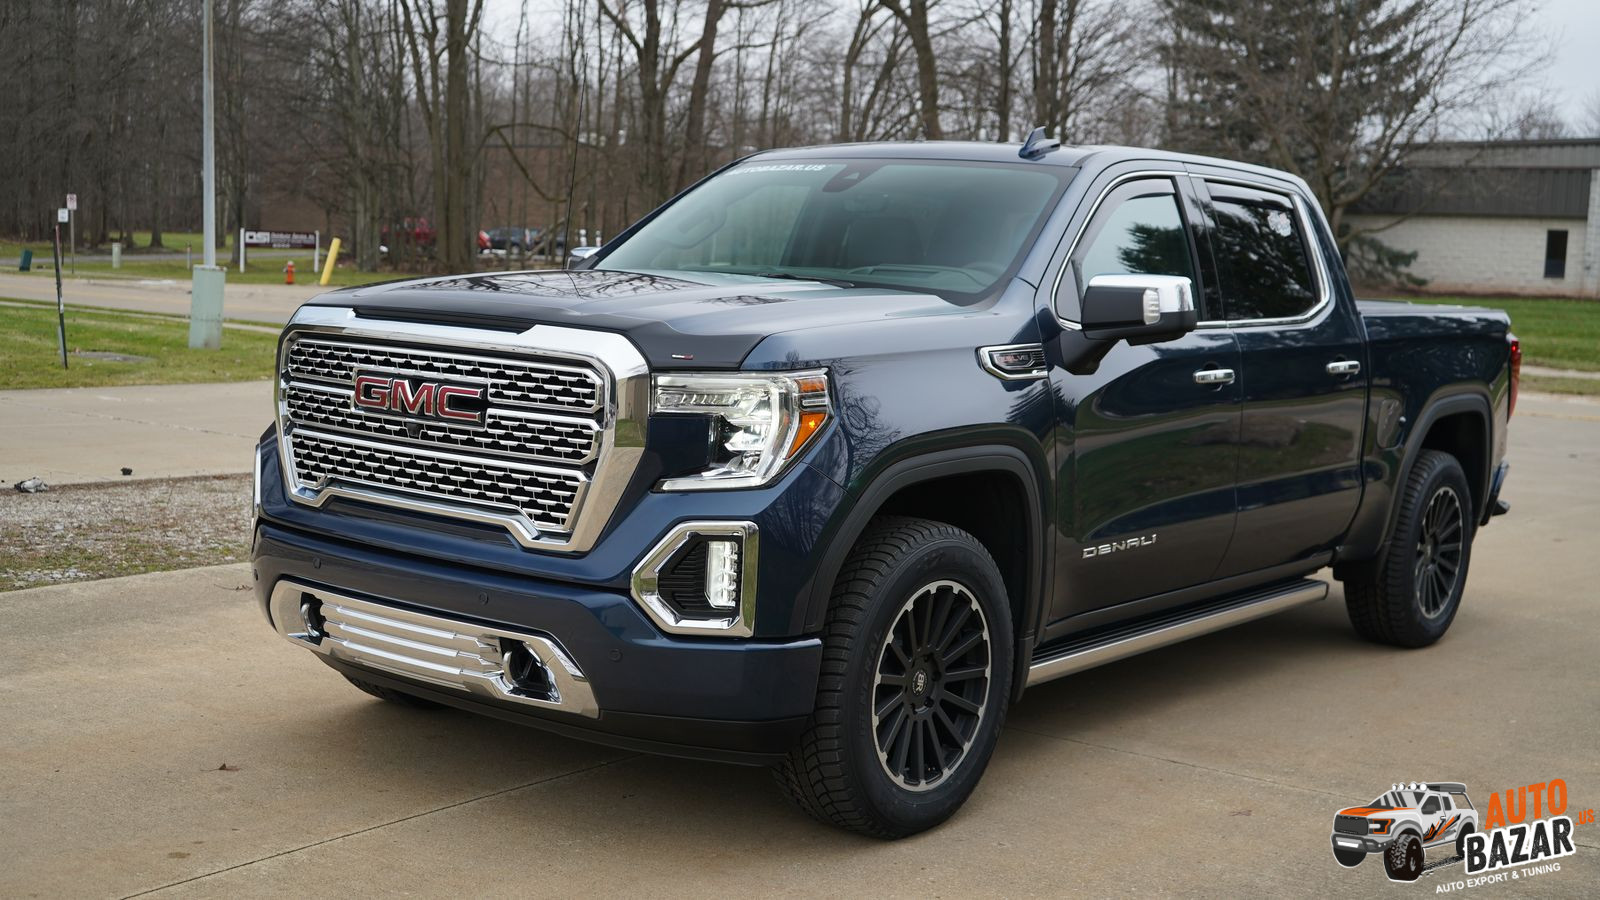 /storage/inventories/1099/1099 2020 GMC Sierra Denali (1).JPG